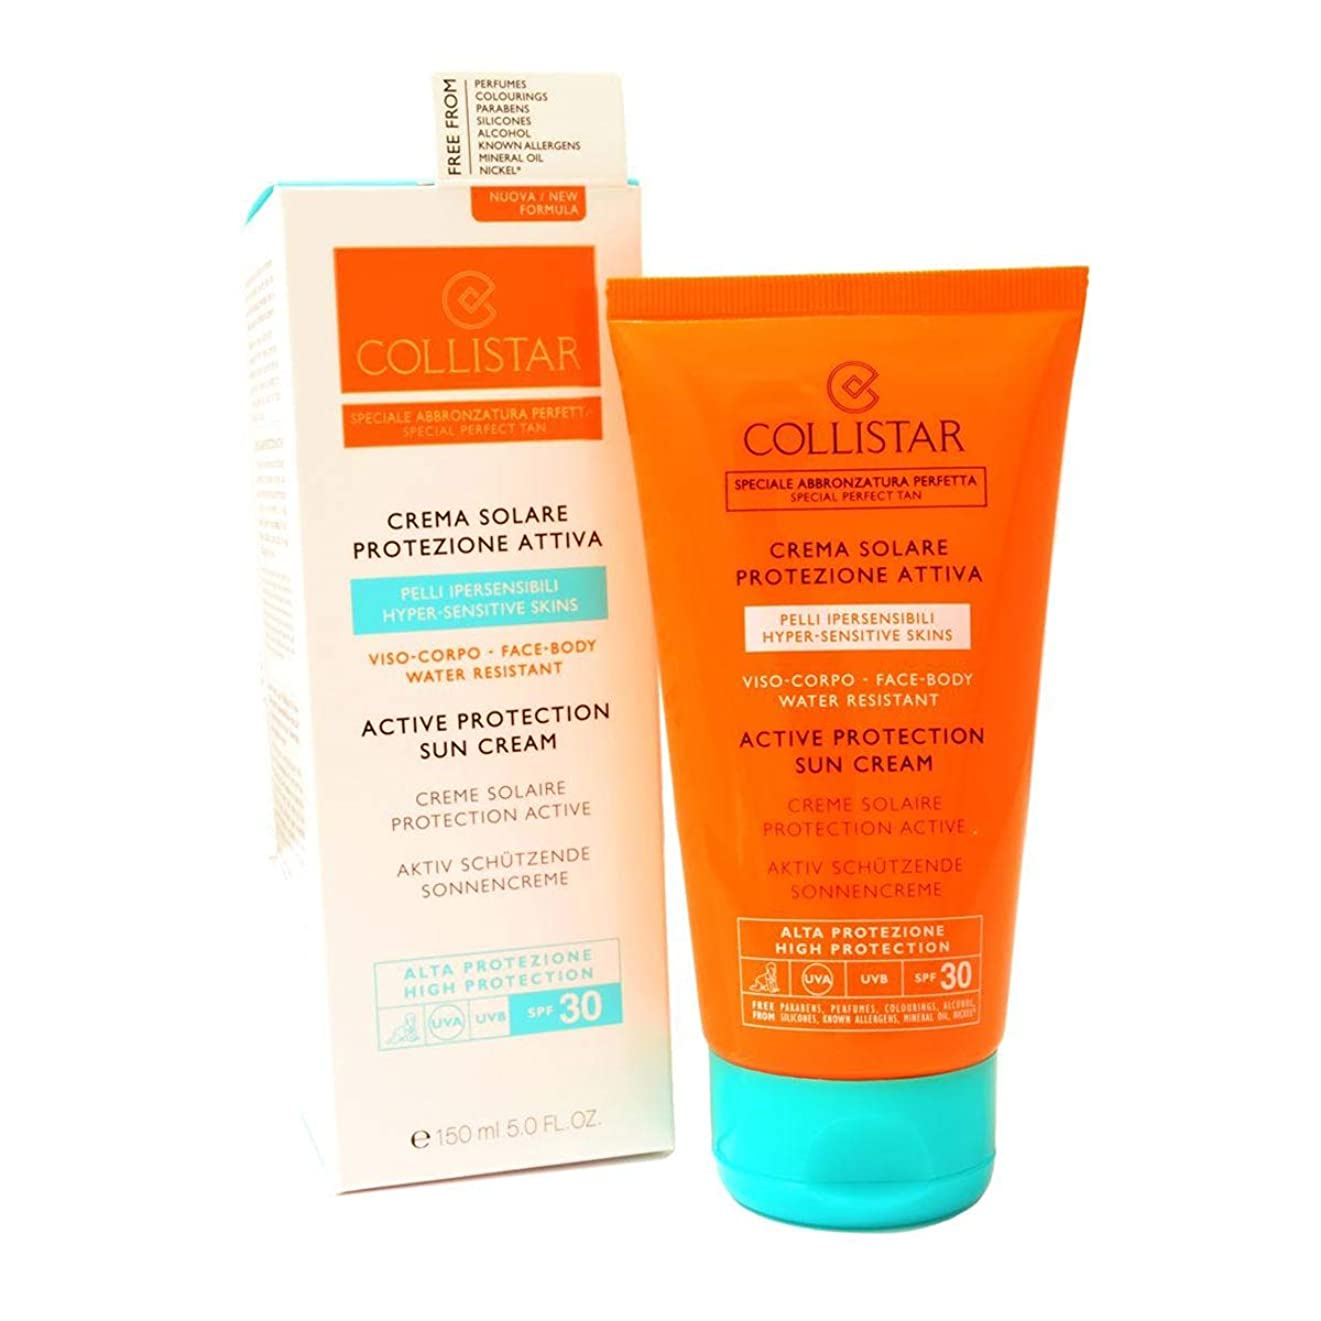 Collistar Active Protection Sun Cream Spf30 Face And Body 150ml [並行輸入品]